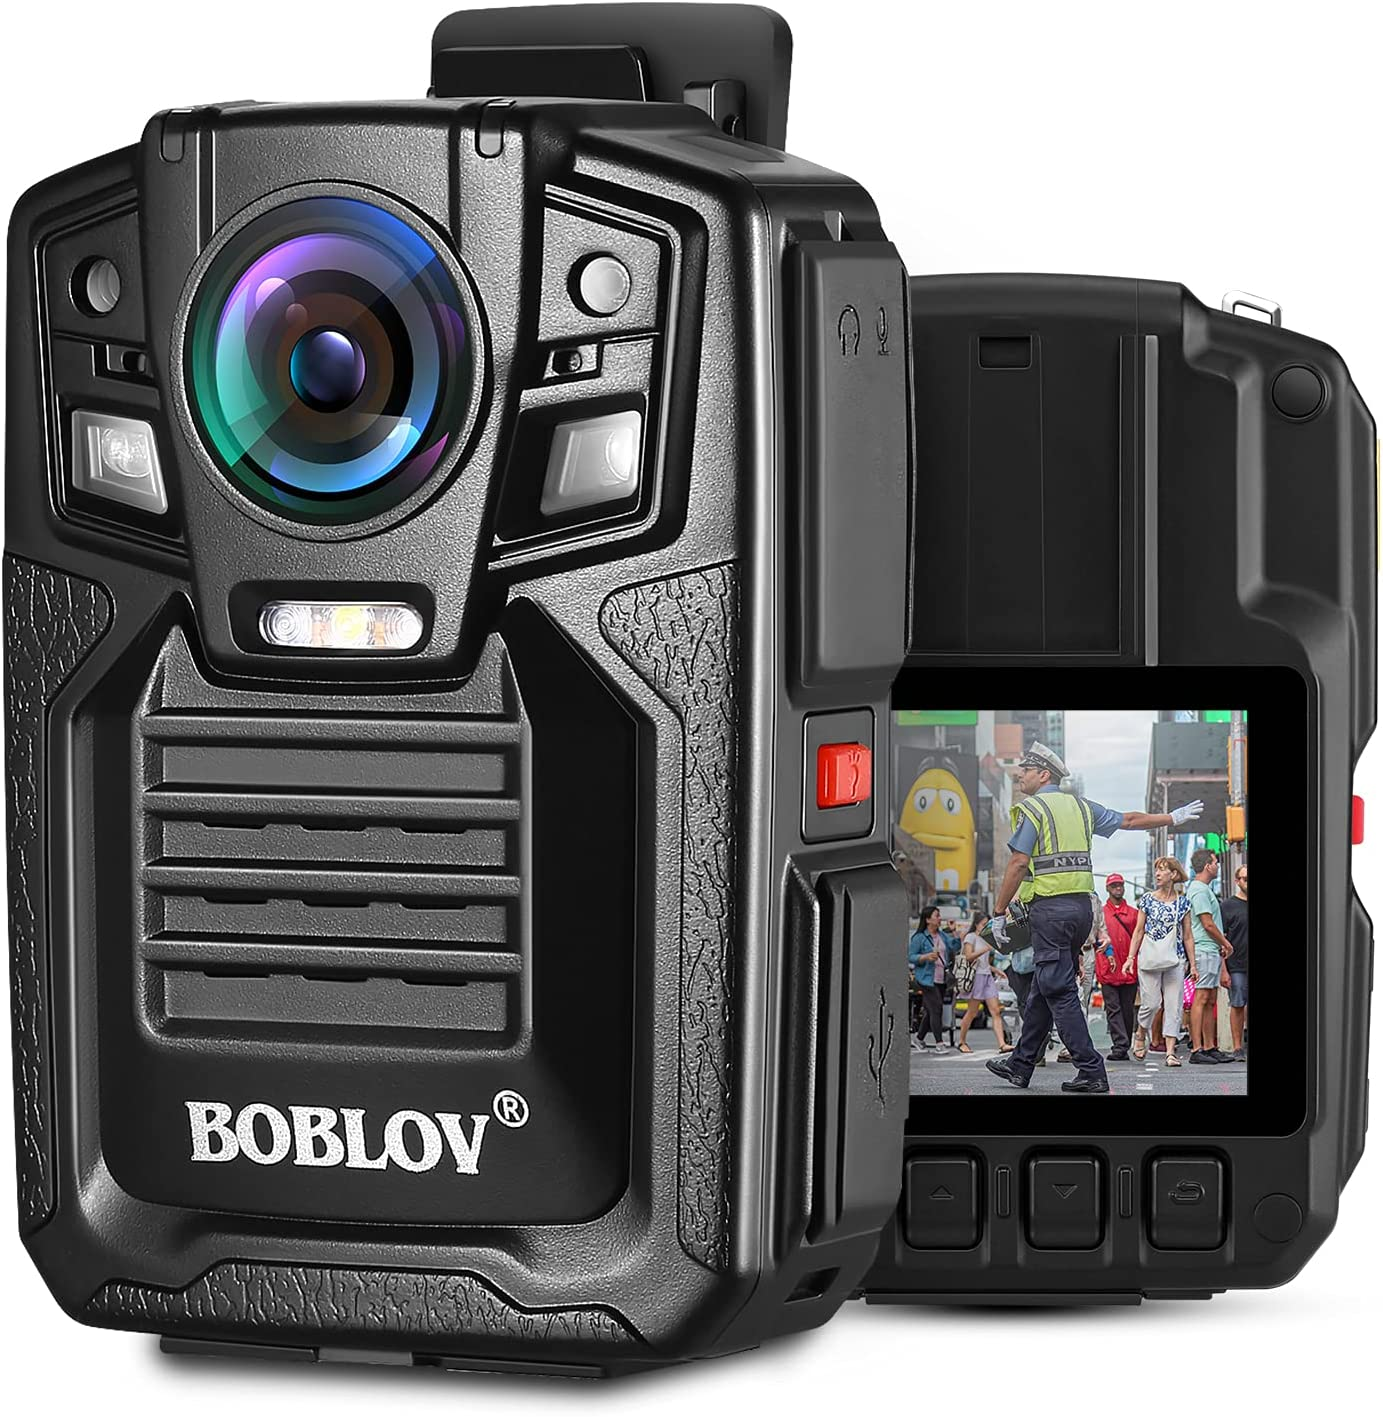 BOBLOV HD66-02 128GB/64GB Police Body Camera, 1296P Waterproof Police Body Camera with Audio, 2 Batteries and Charging Dock Station and 170° Wide Angle, Night Vision Body Camera (64GB)